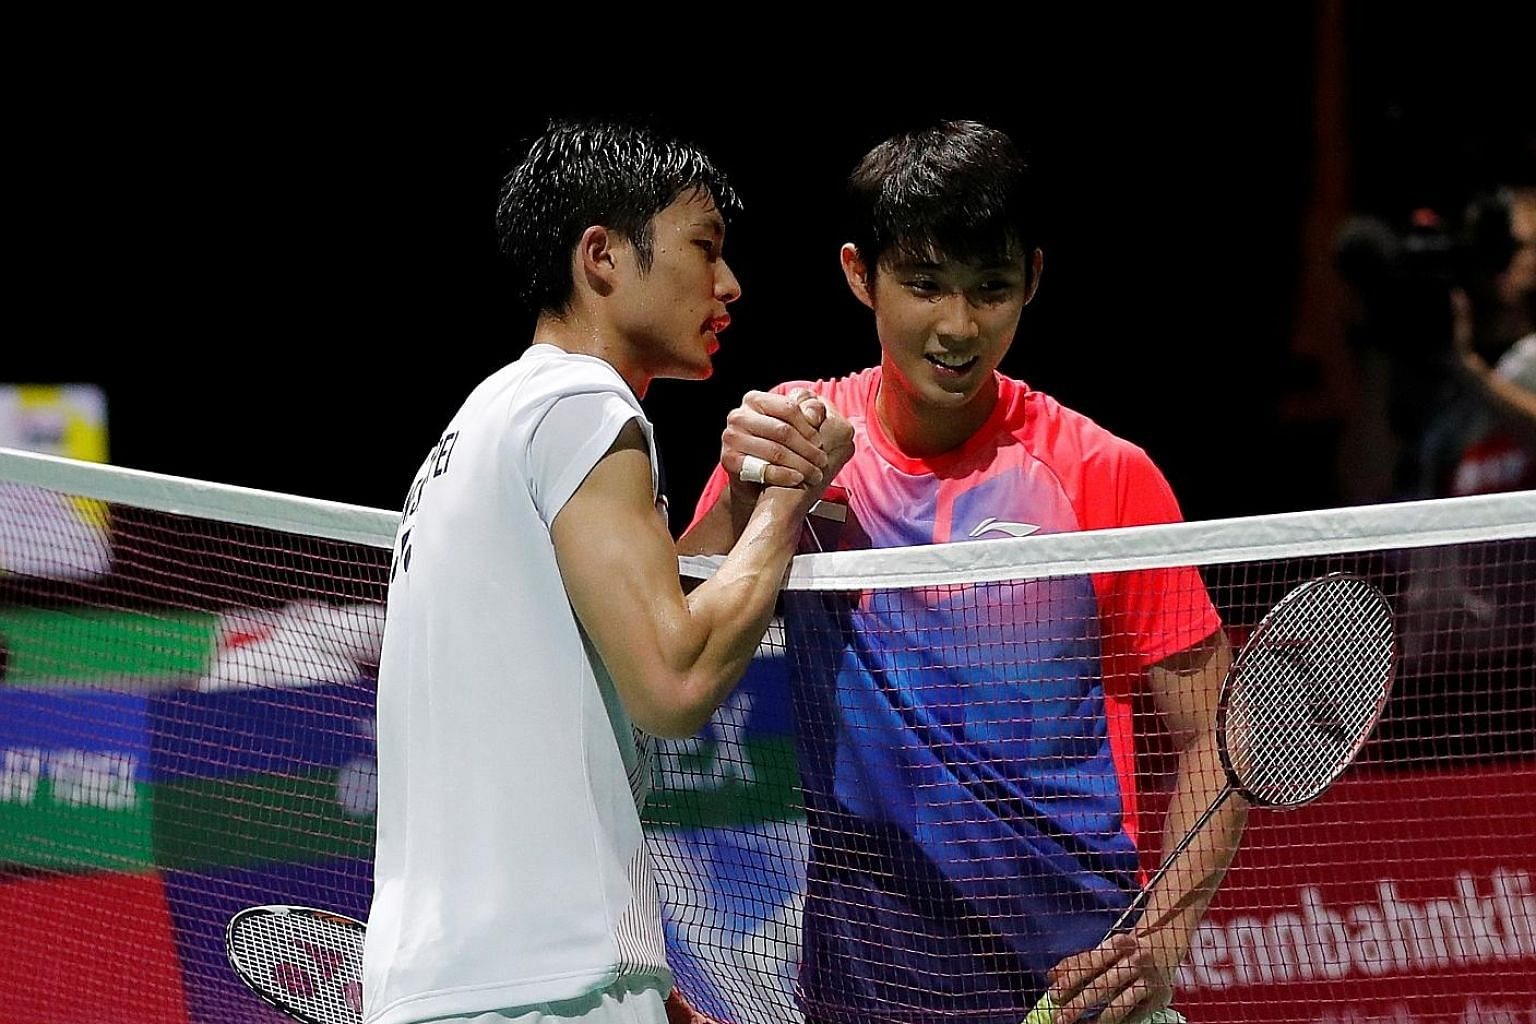 Chinese Taipei's Chou Tien-chen consoling Loh Kean Yew (right) at the net after beating the Singaporean in the third round of the BWF World Championships in Basel yesterday. While he exited the tournament, Yeo Jia Min (above) will play Thailand's Rat